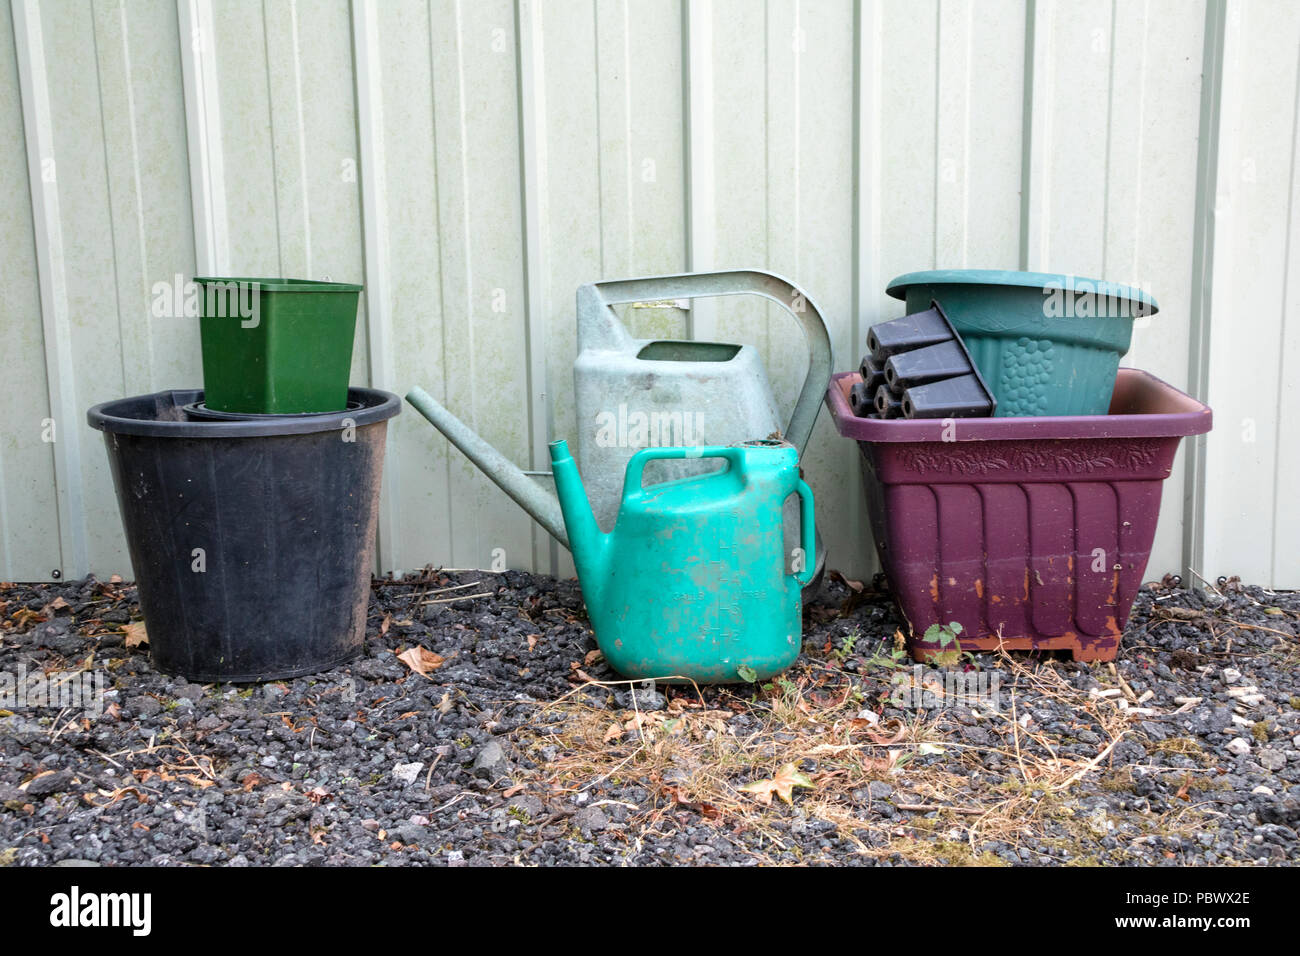 Discarded plastic gardening items. - Stock Image